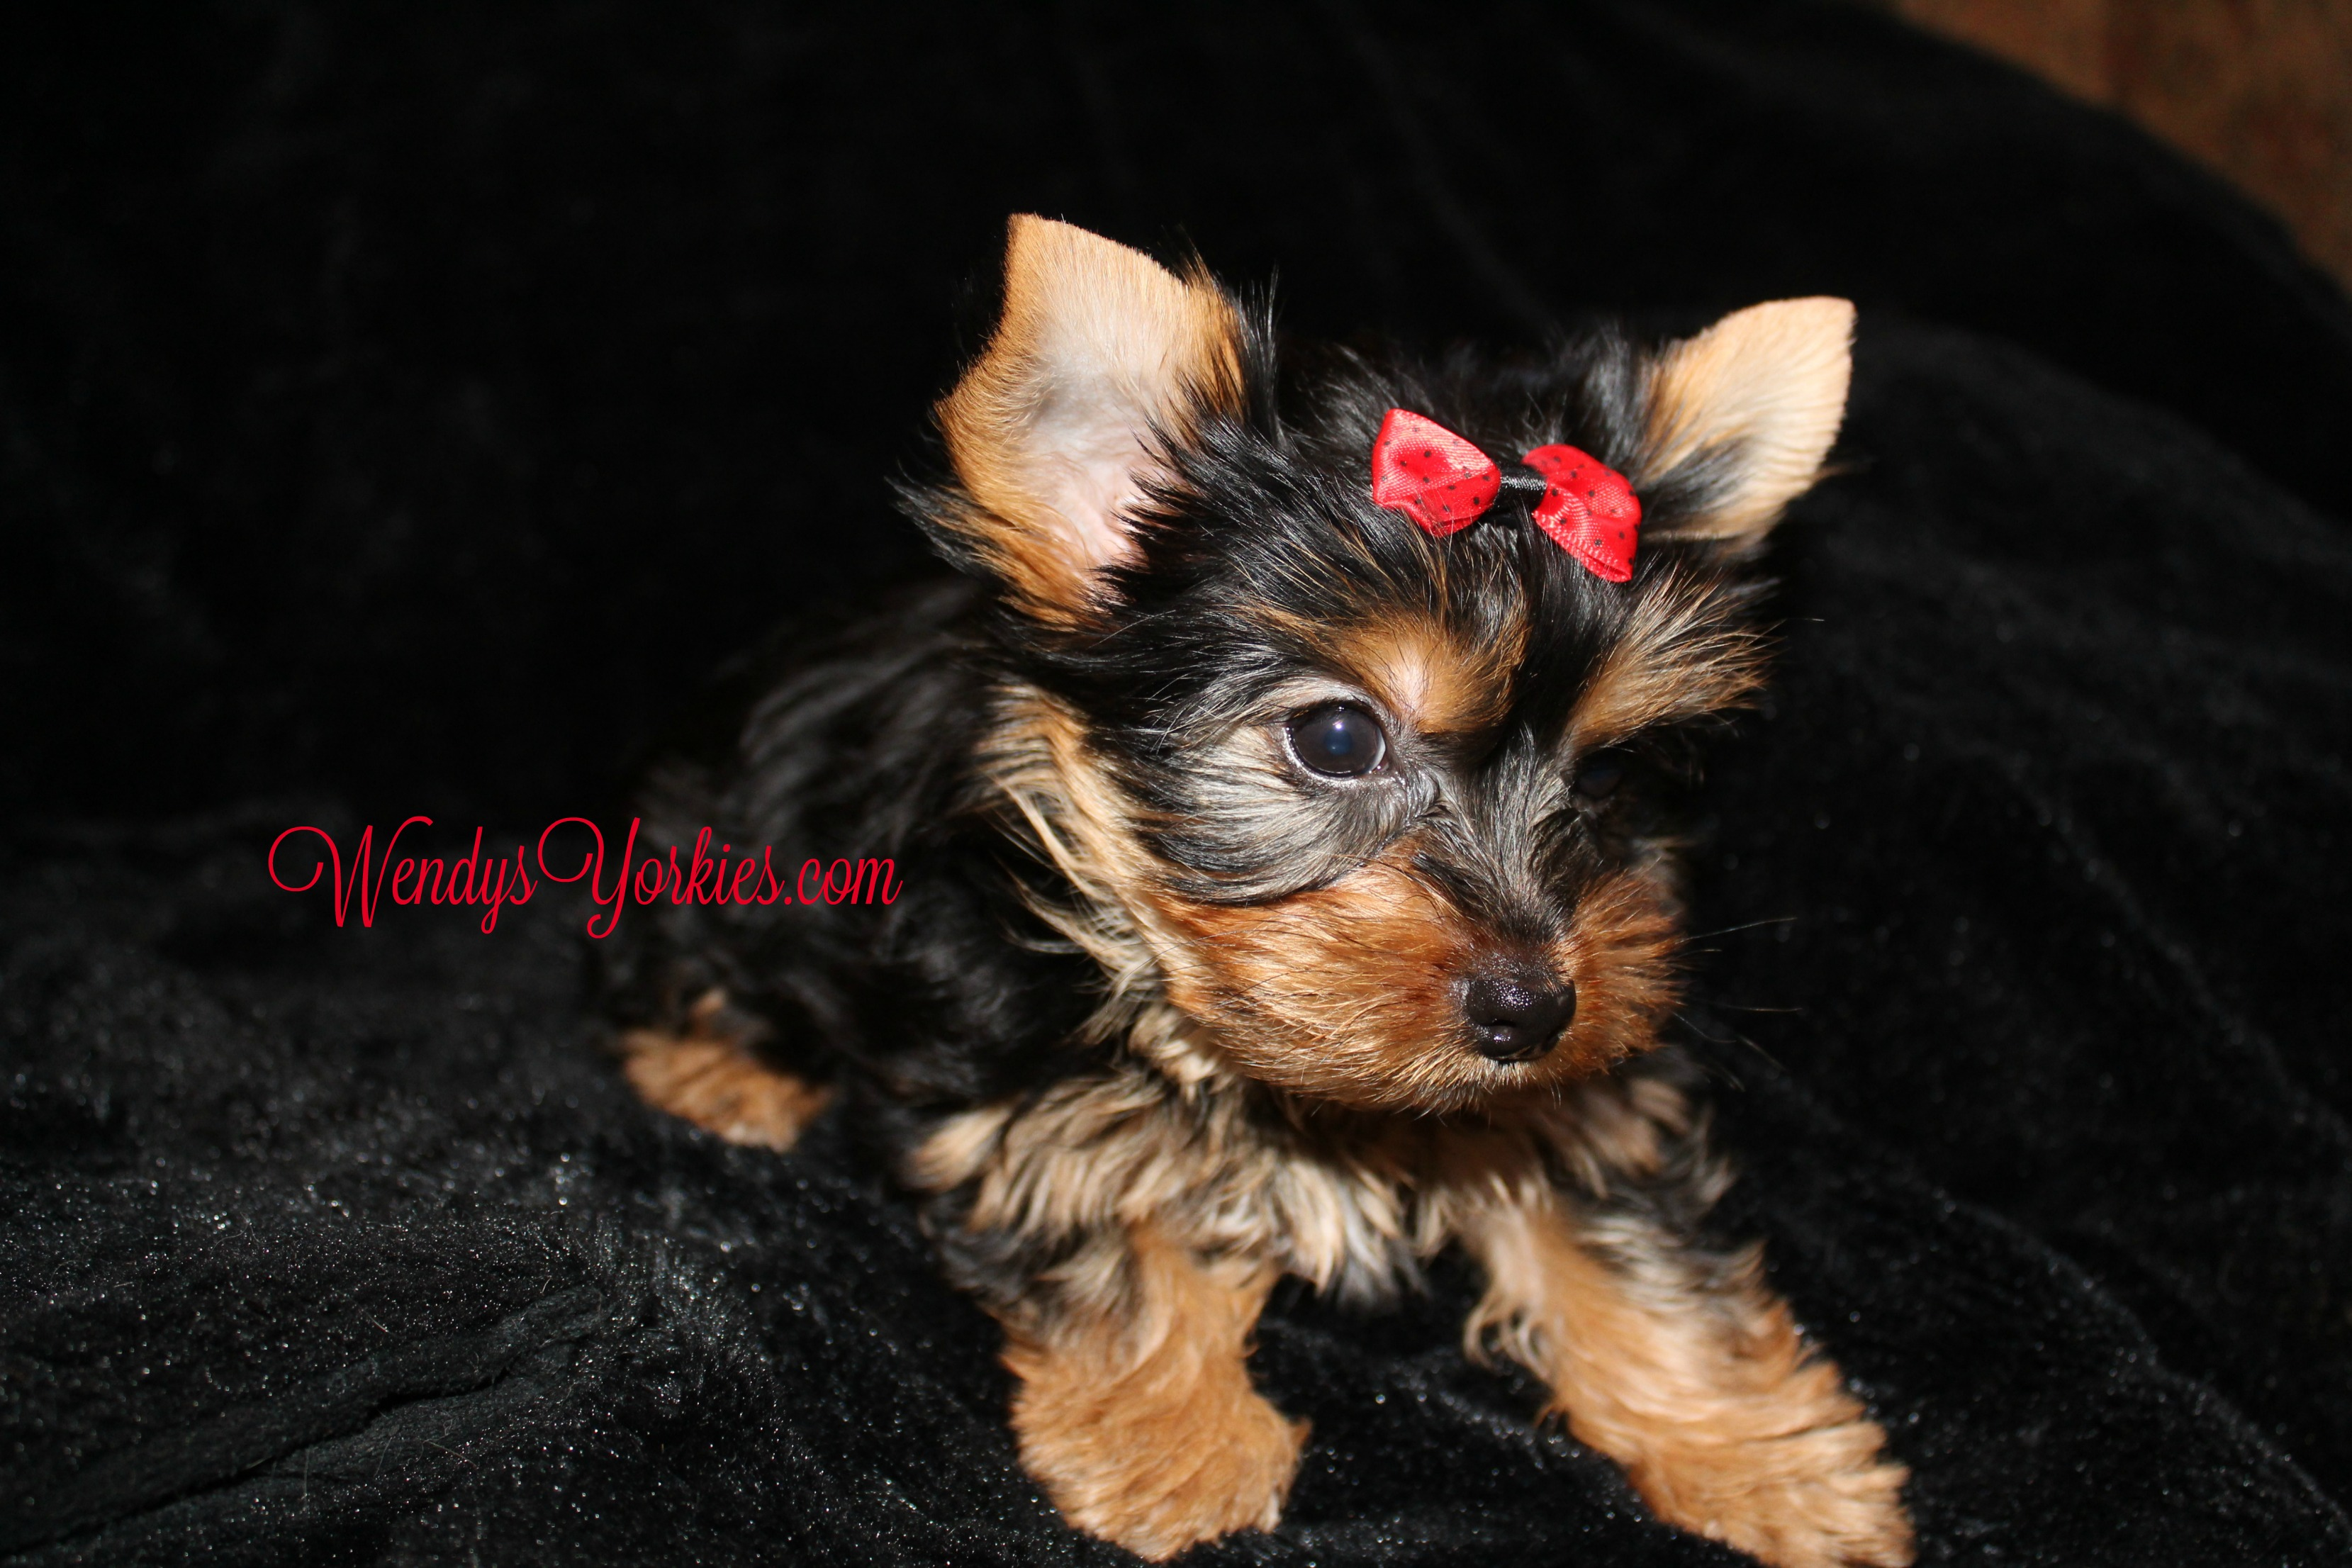 Teacup YOrkie puppy for sale, Anna m1